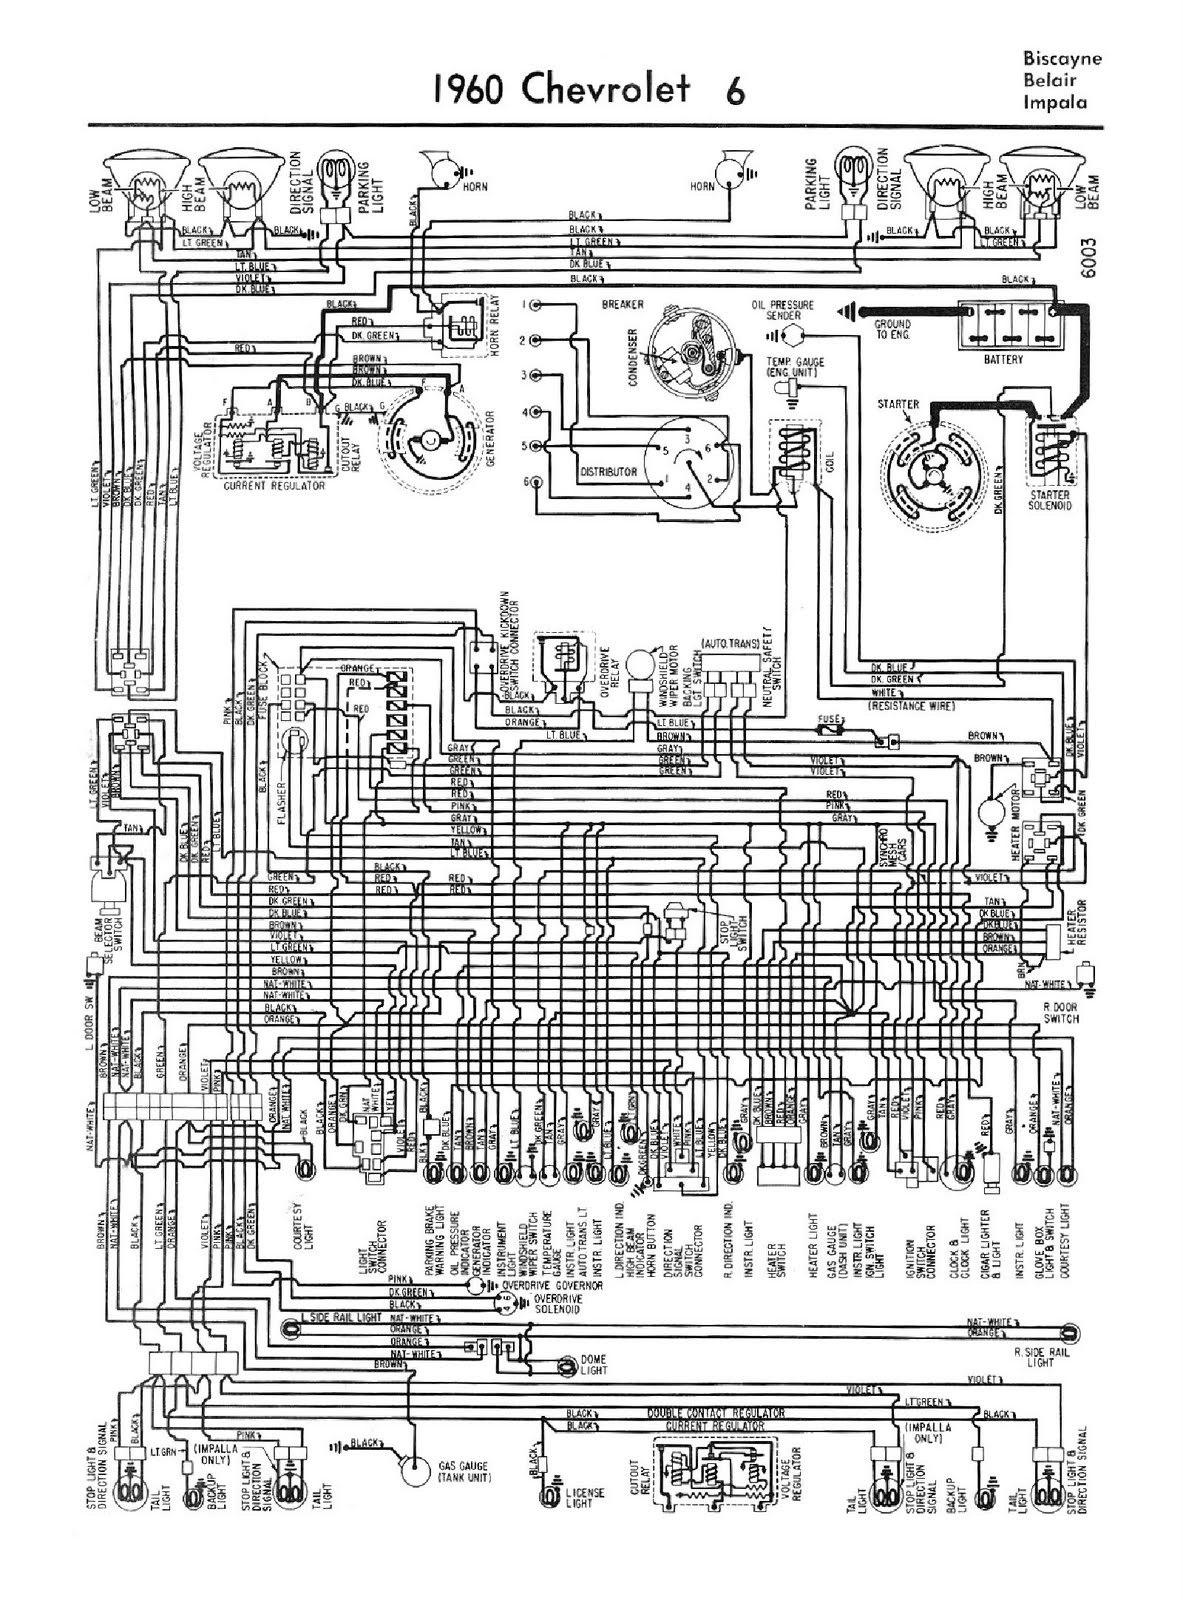 Chevy V Biscayne Belair Impala in addition Fd Ebdaf Be A D Aed F likewise Mwire in addition D A B B besides Bus. on 1960 chevy wiring diagram